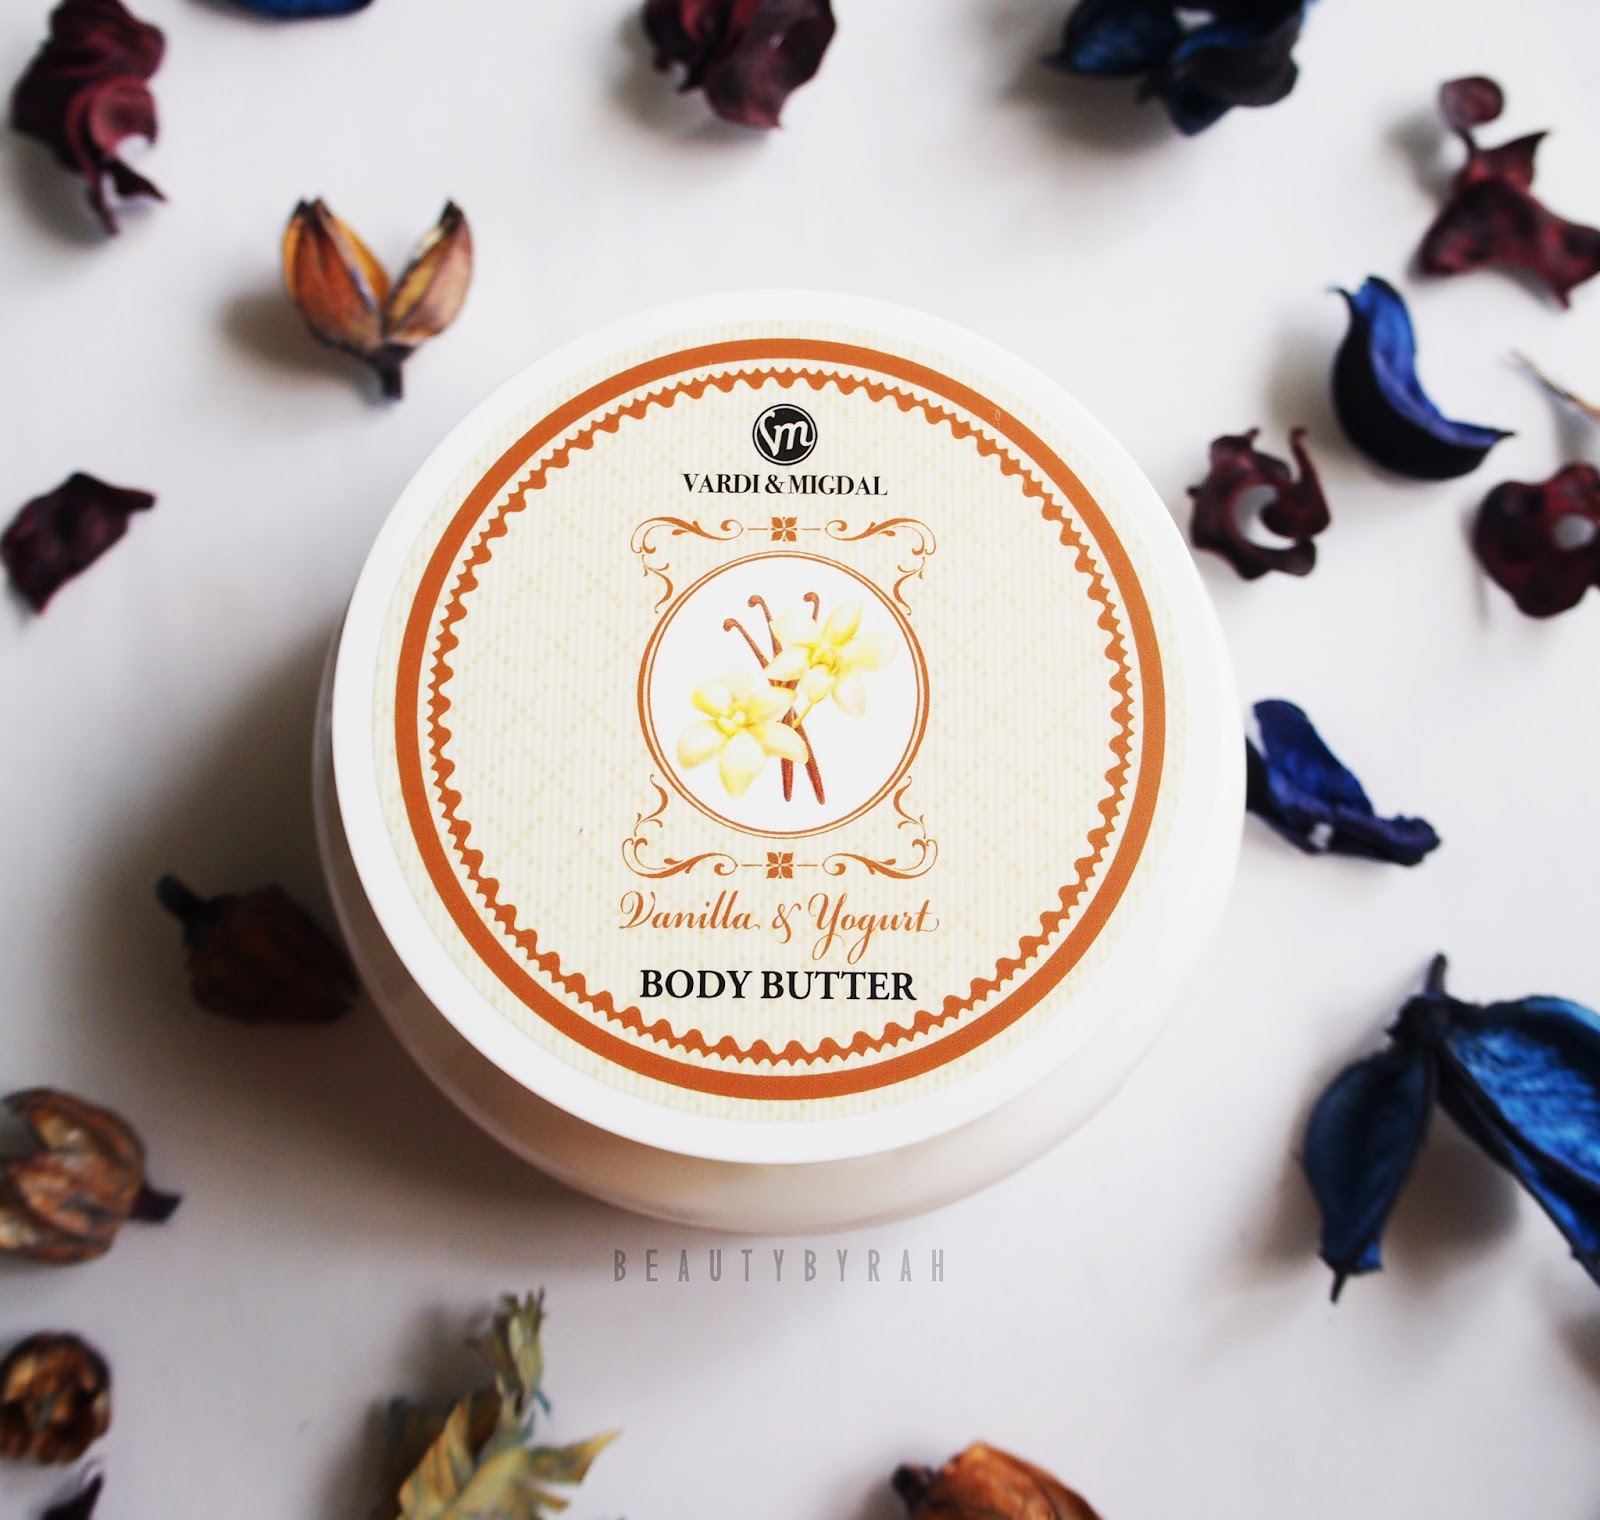 Vardi & Midgal Body Care Vanilla and Yoghurt Body Butter Review